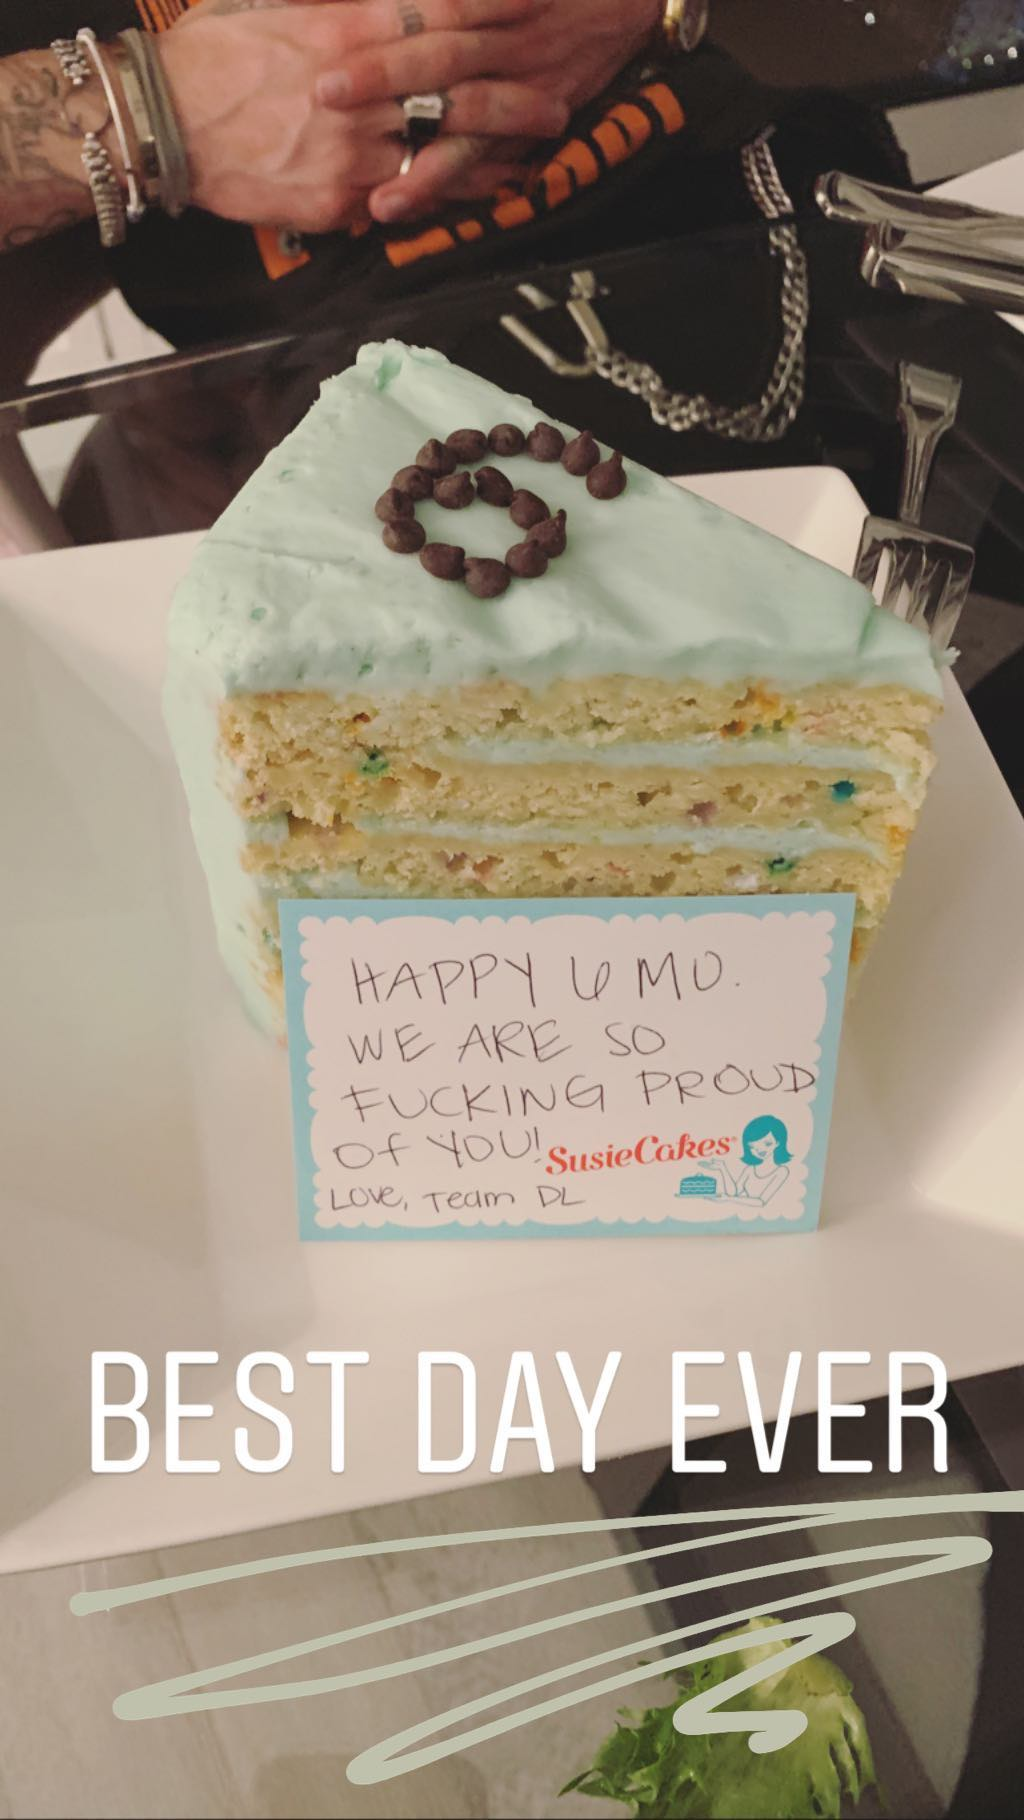 Piece of cake with celebratory message